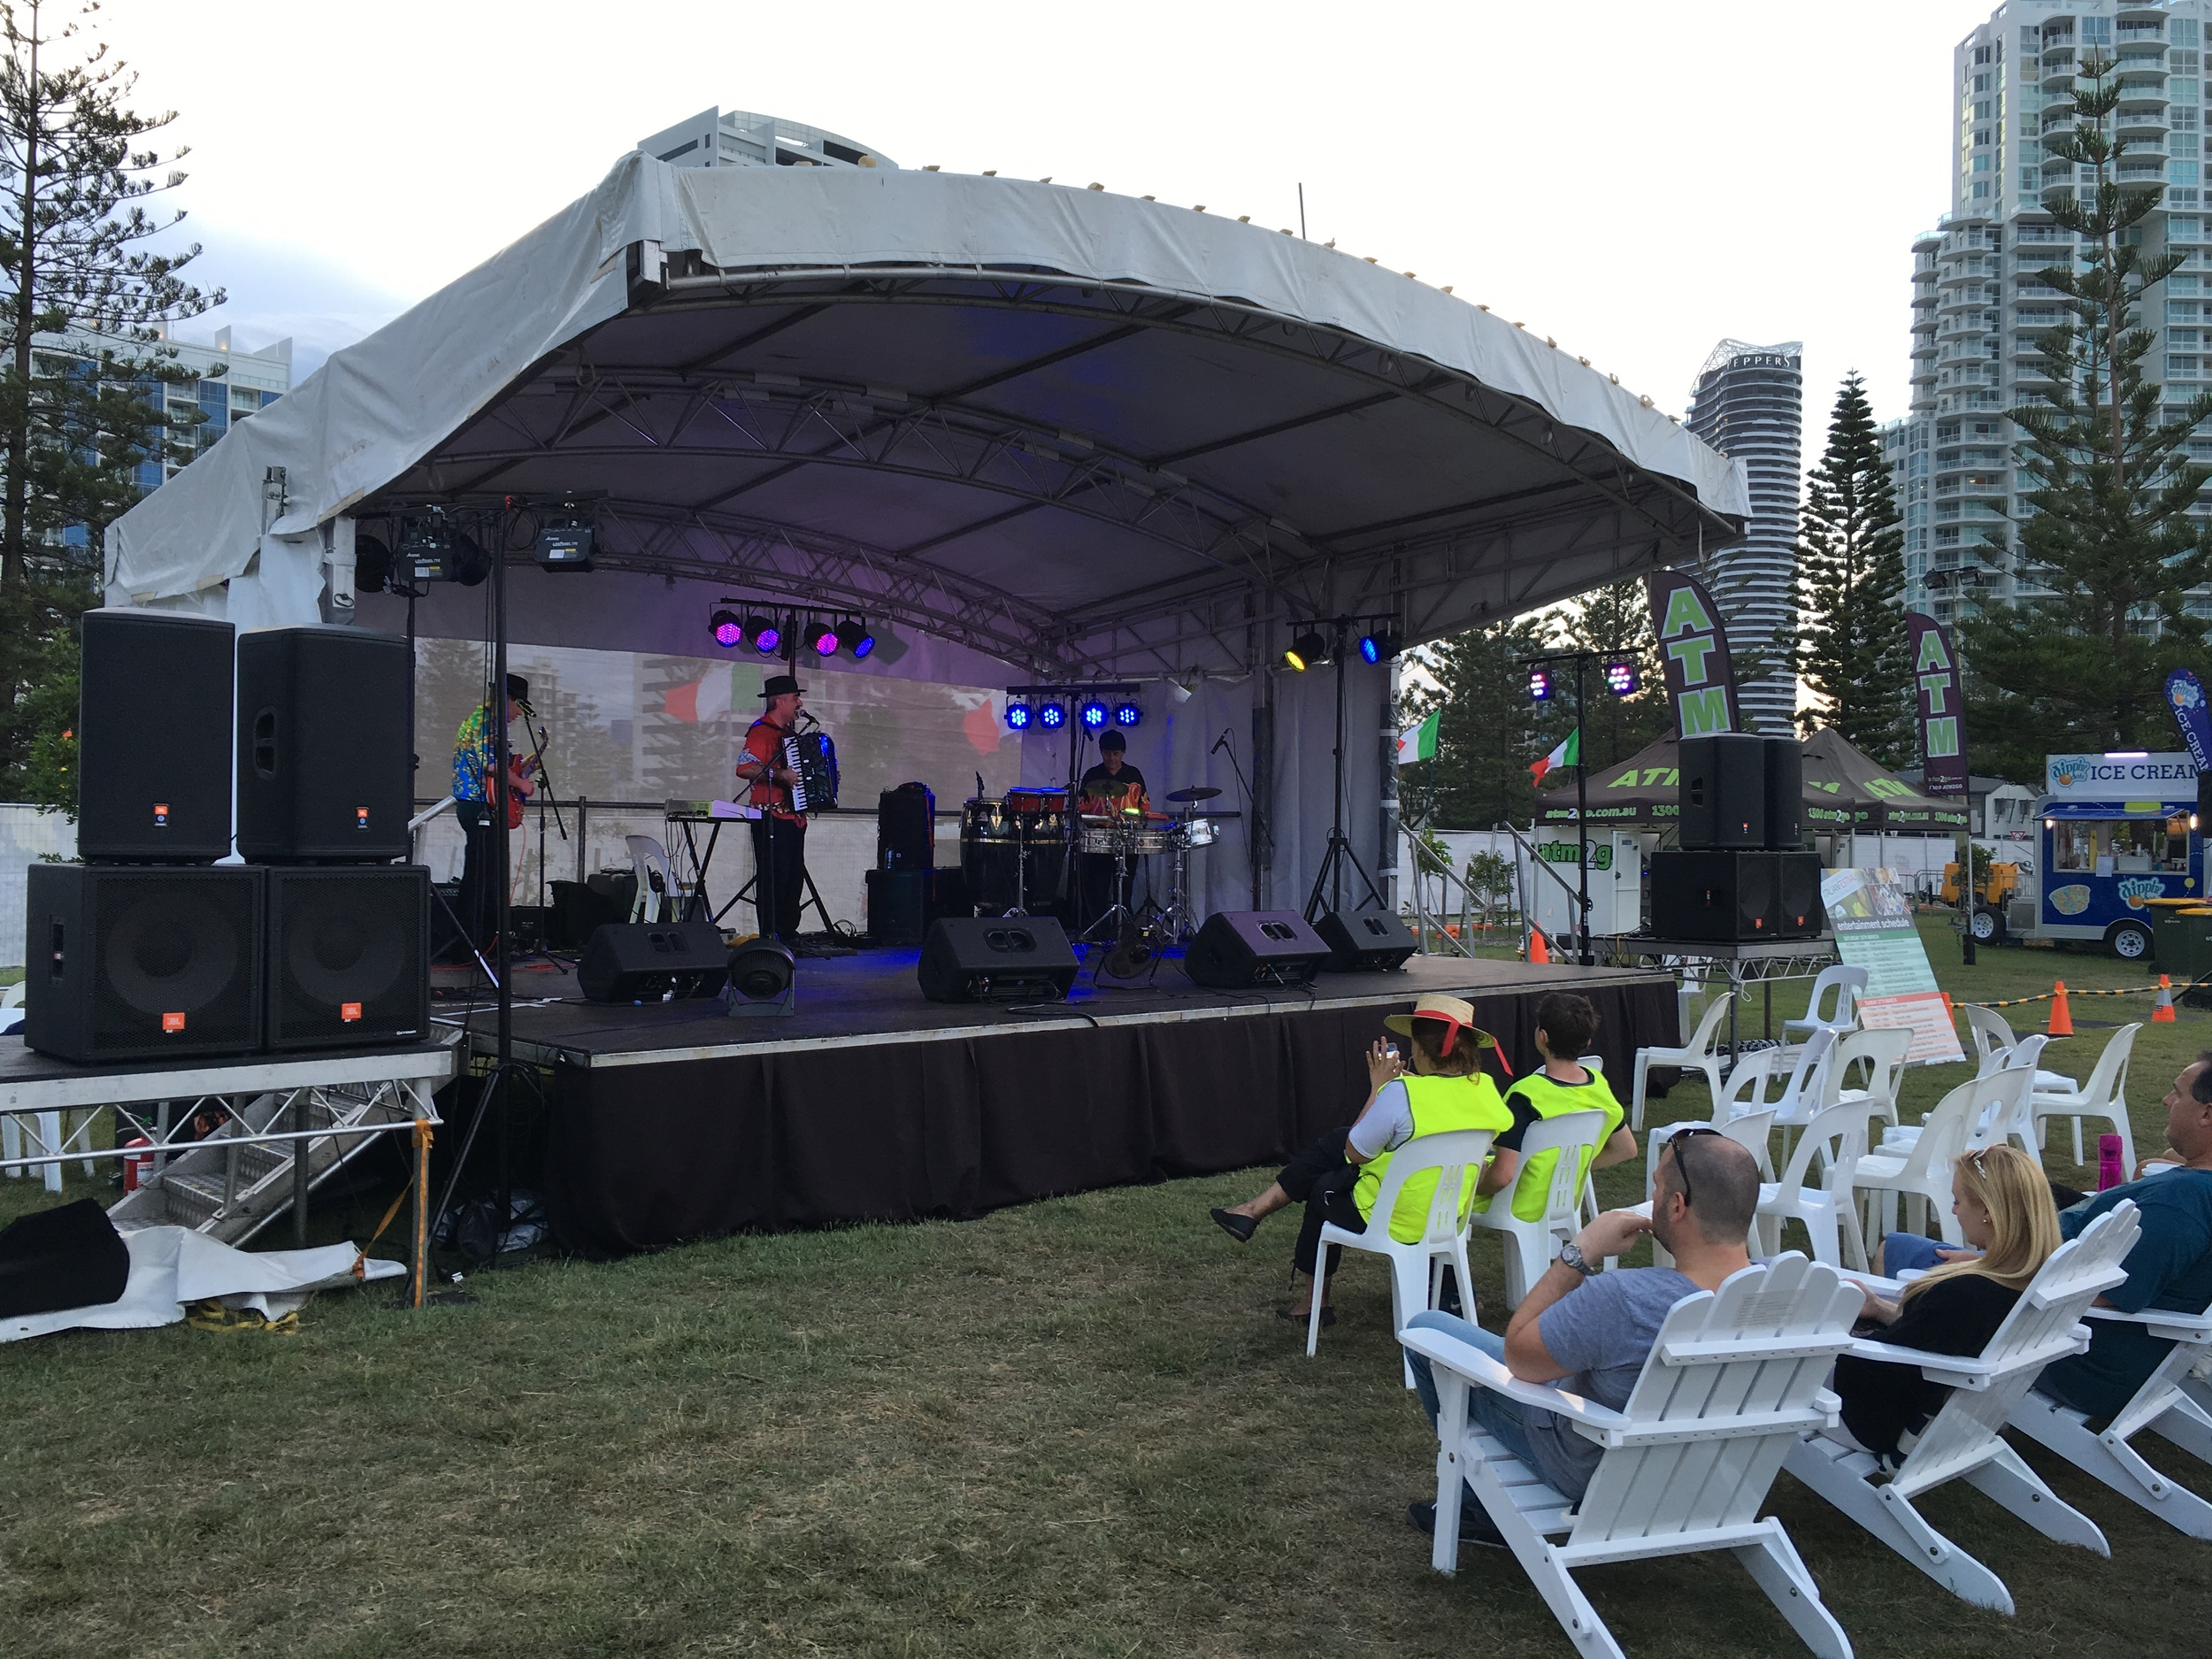 Sound check for 'Latin Mafia' at the Italian Festival, Broadbeach, Gold Coast in March 2016